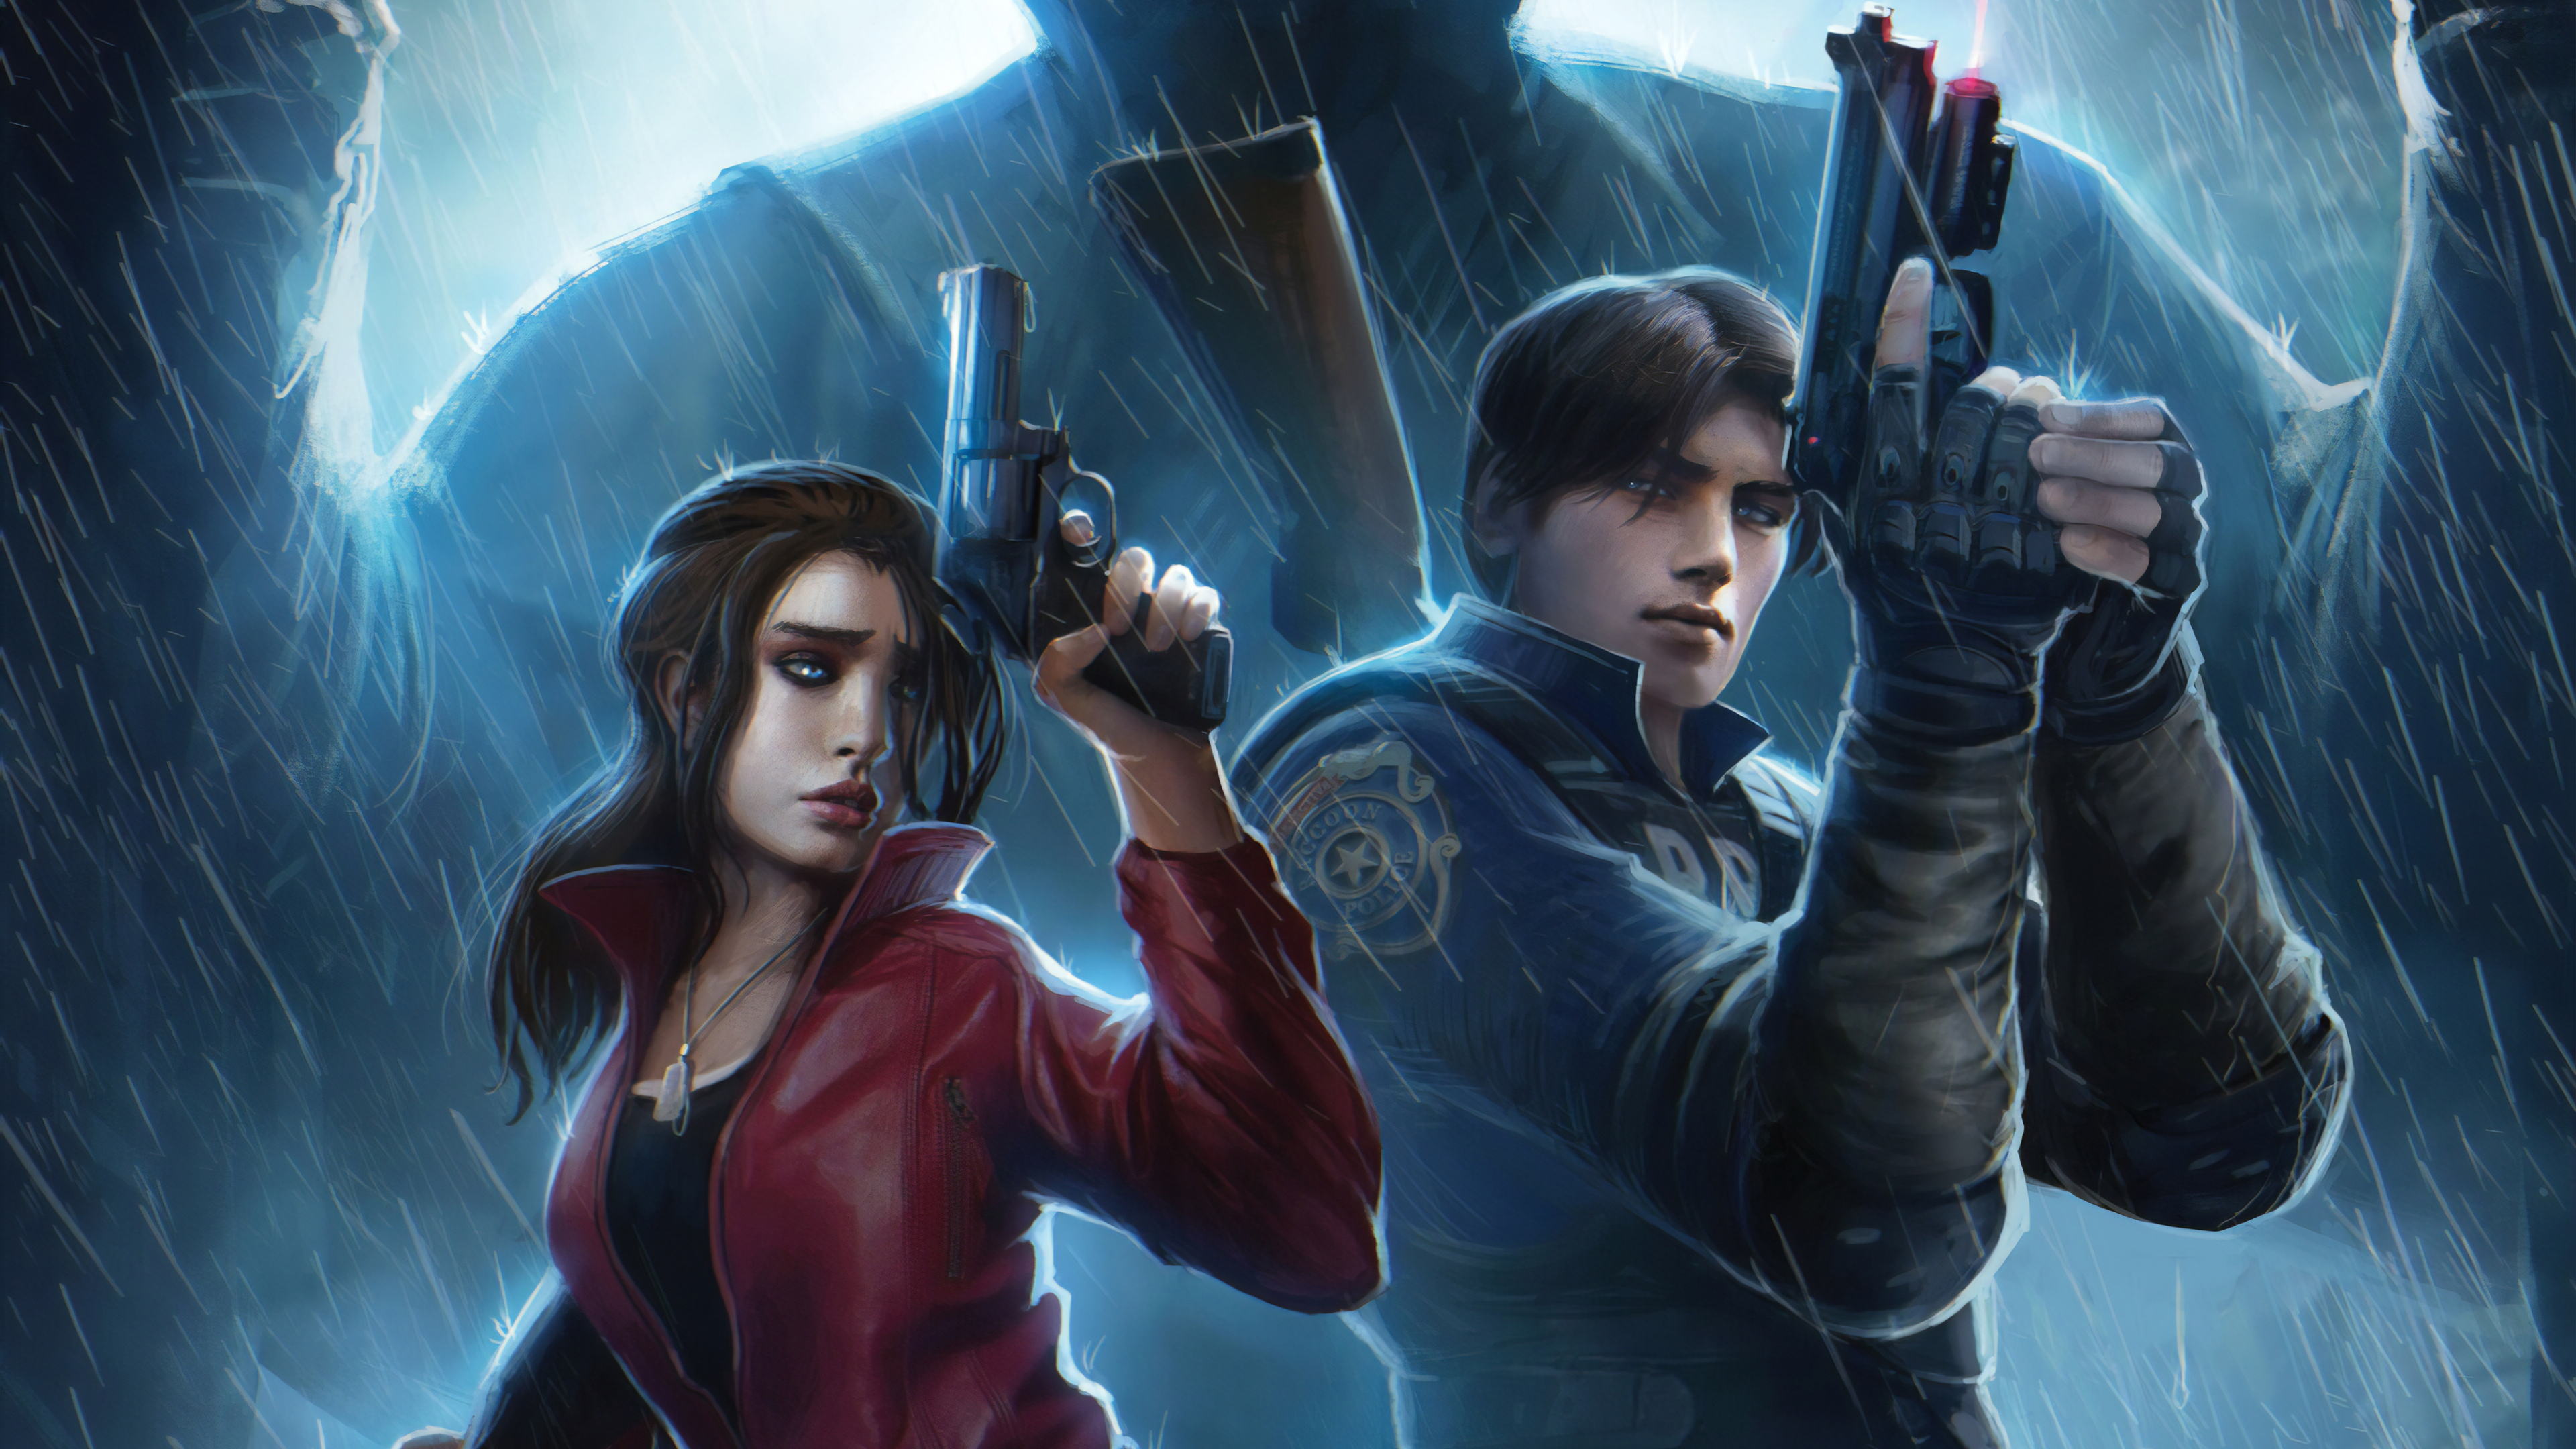 claire redfield and leon resident evil 2 art 1559798200 - Claire Redfield And Leon Resident Evil 2 Art - resident evil 2 wallpapers, hd-wallpapers, games wallpapers, 4k-wallpapers, 2019 games wallpapers